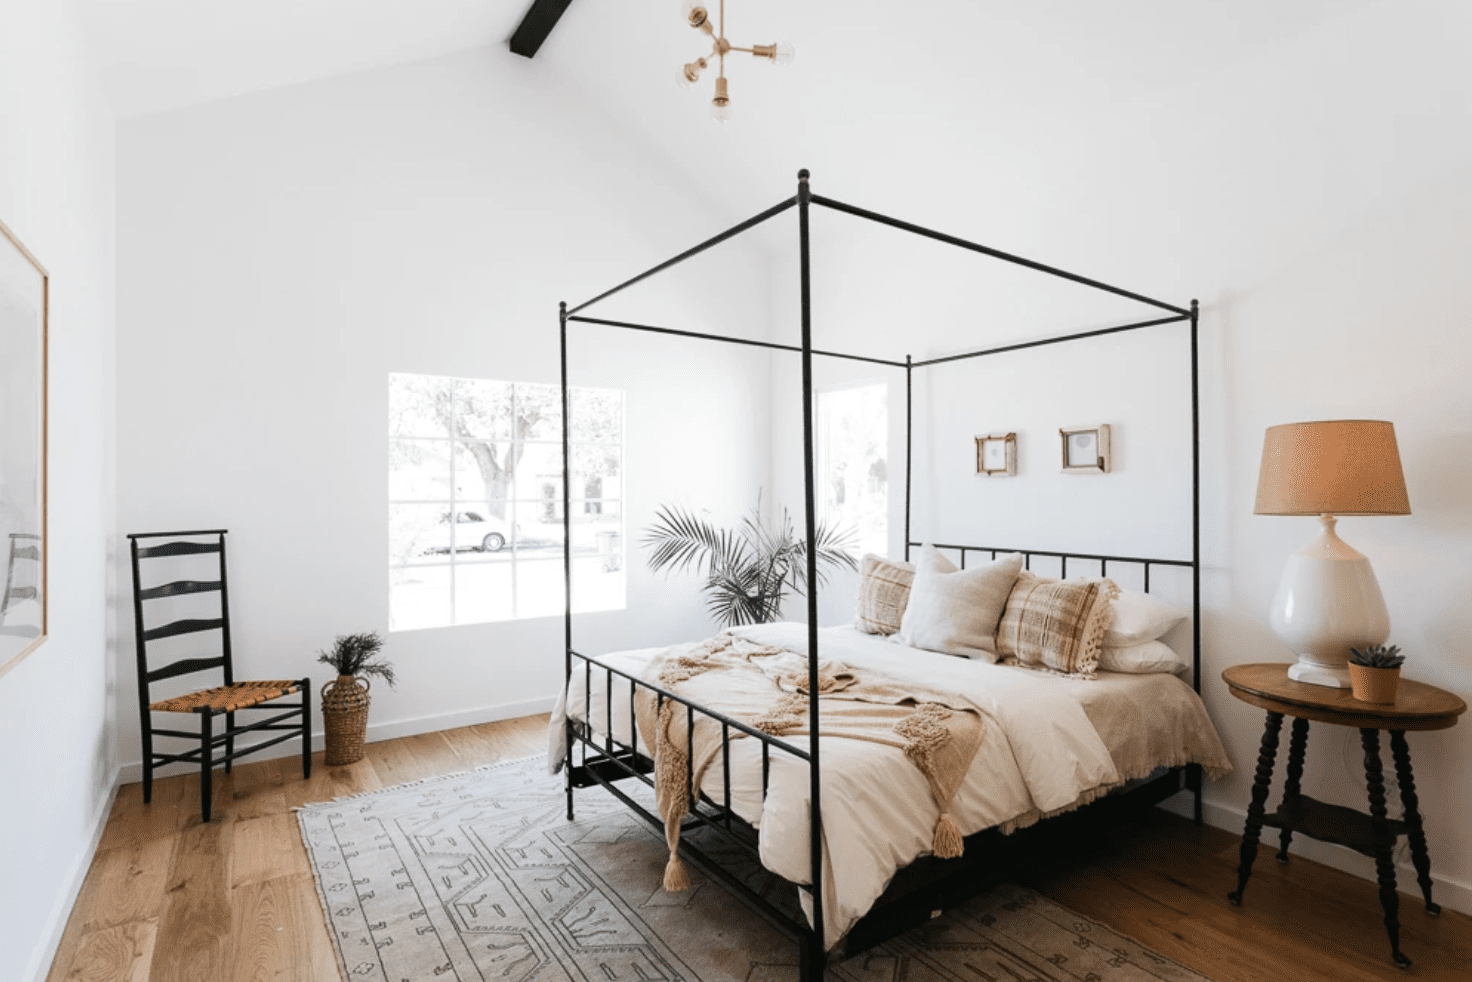 A modern bohemian bedroom with a geometric chandelier and bold ceramic table lamp